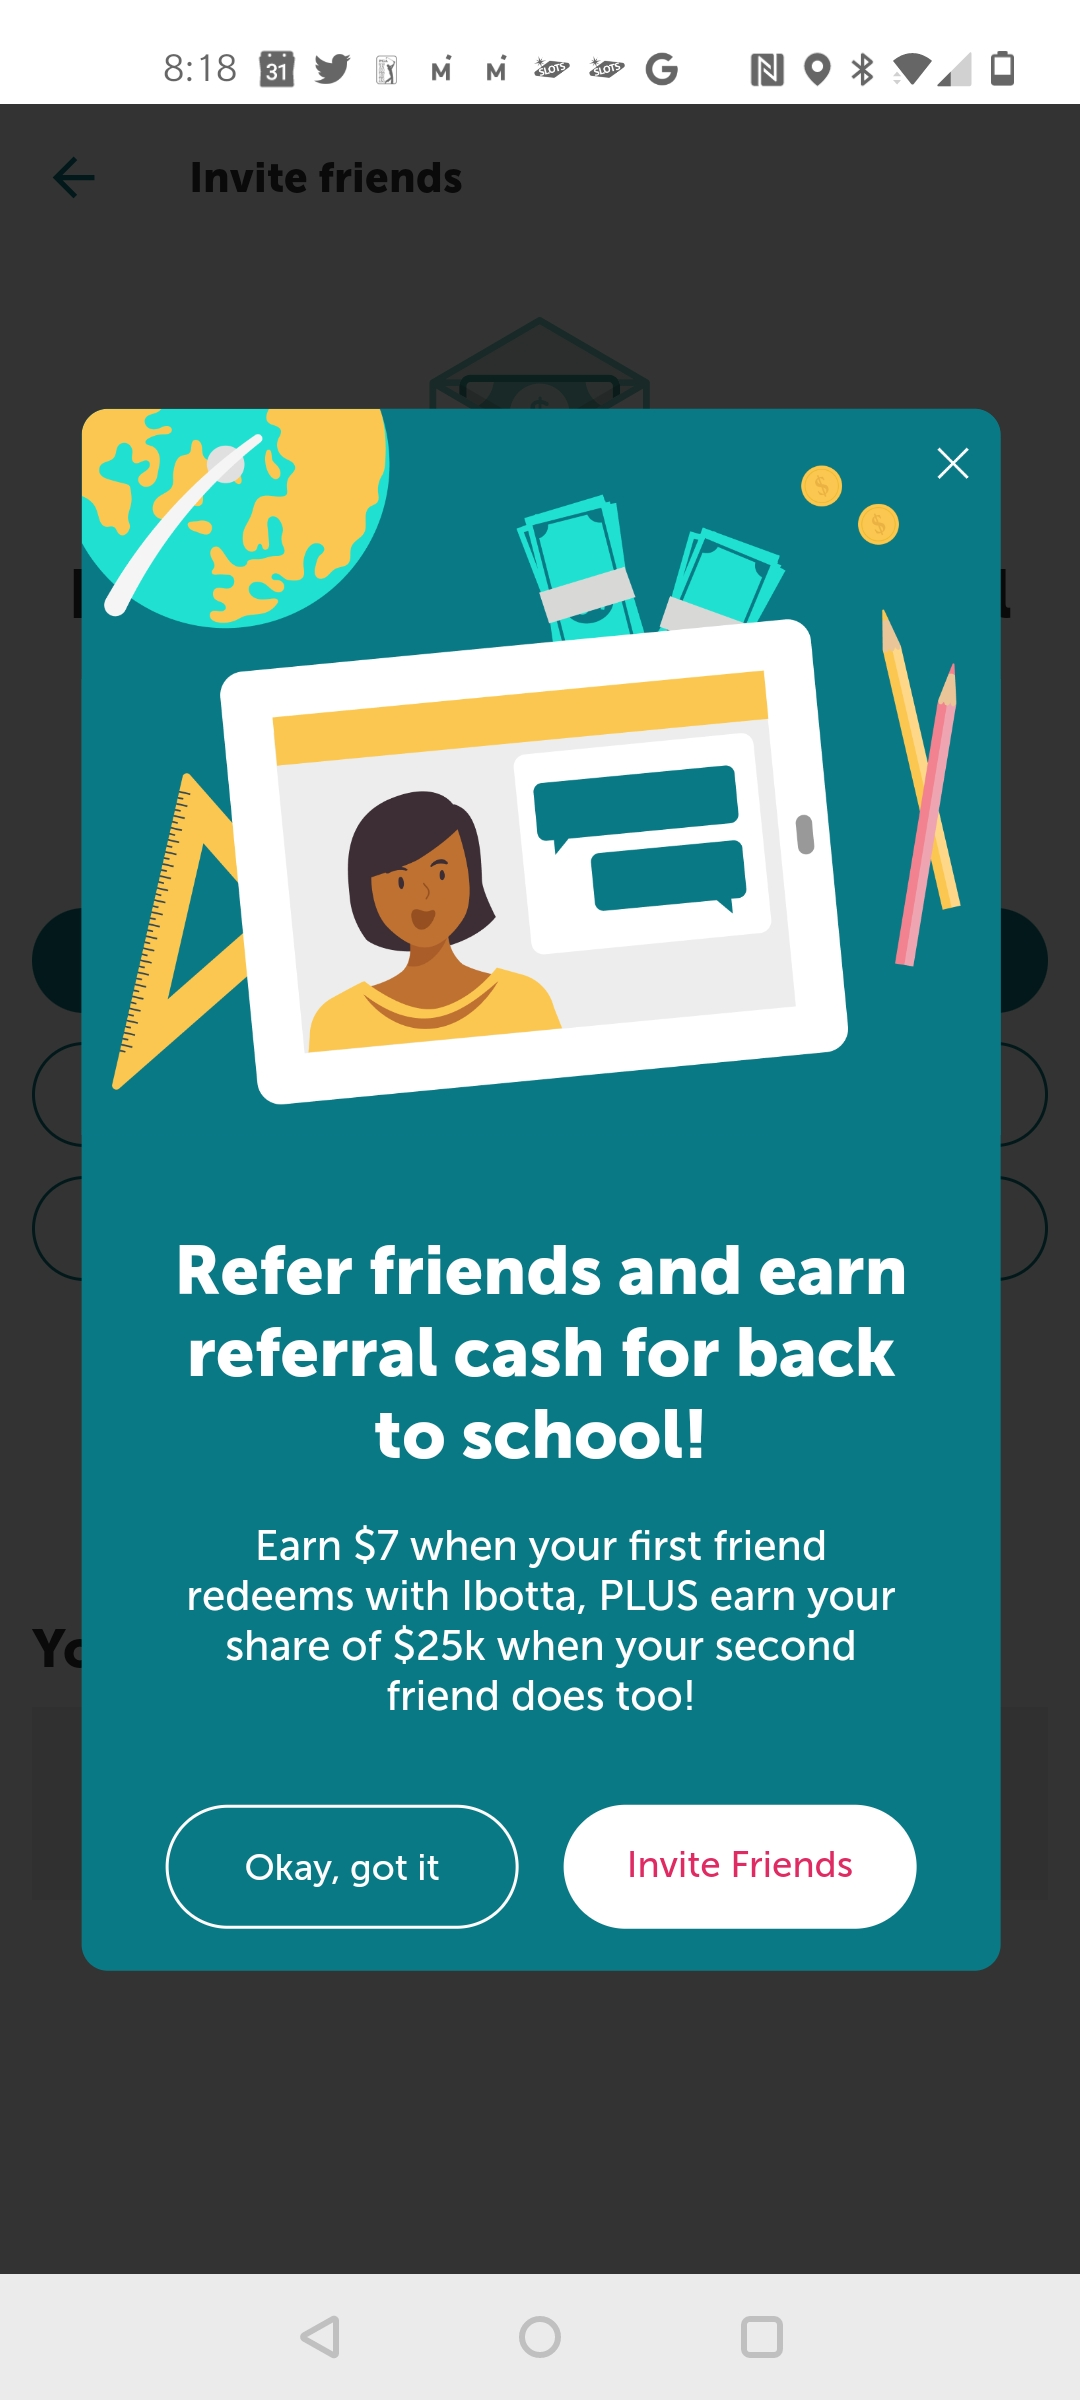 Get $7 credit when you join Ibotta. Only $10 to Redeem cash back earnings